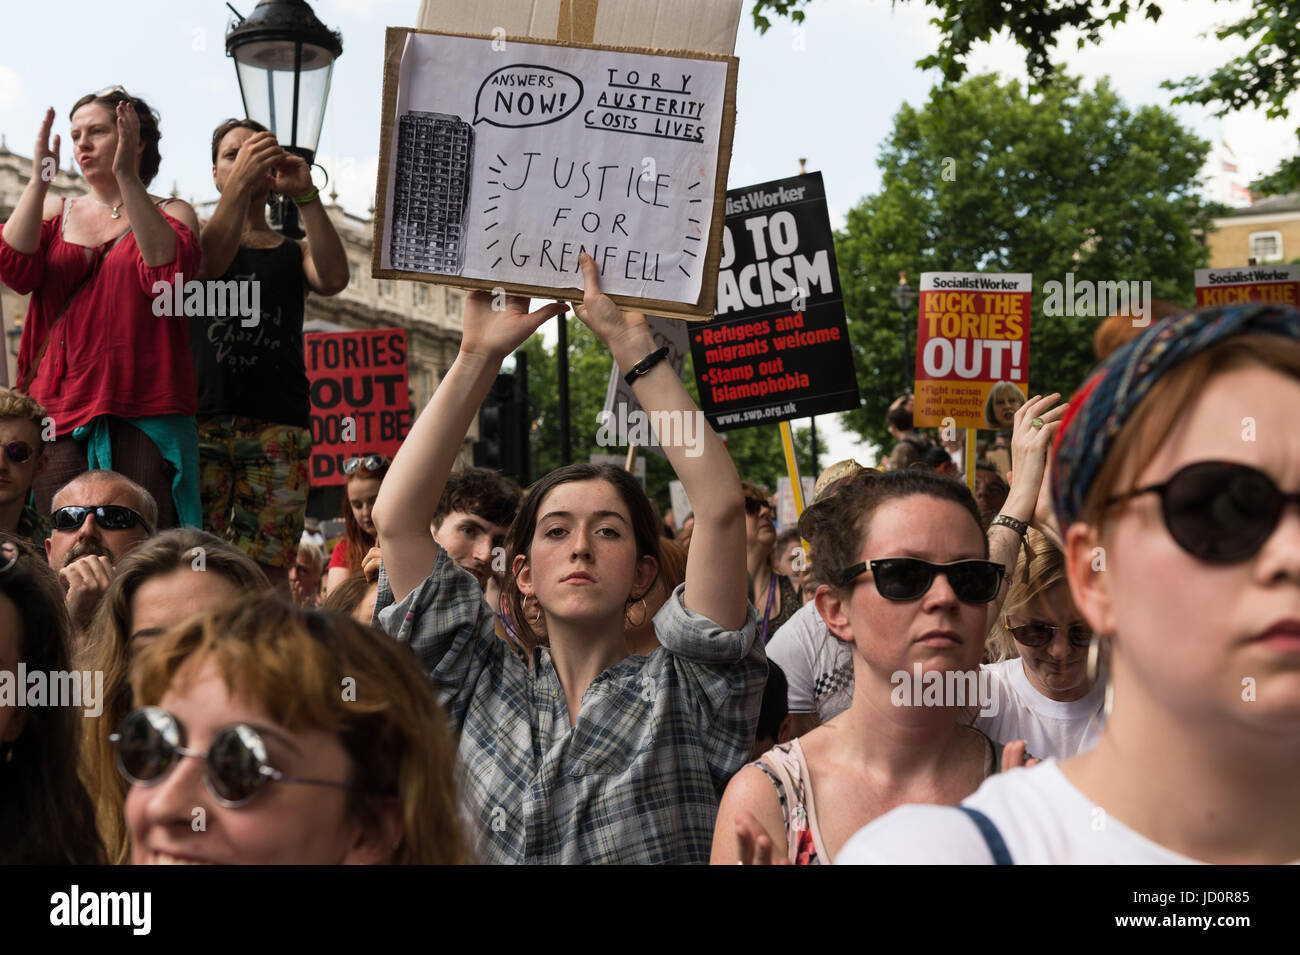 London, UK. 17th June, 2017. Pro-Labour demonstrators gather on Whitehall outside Downing Street in central London - Stock Image